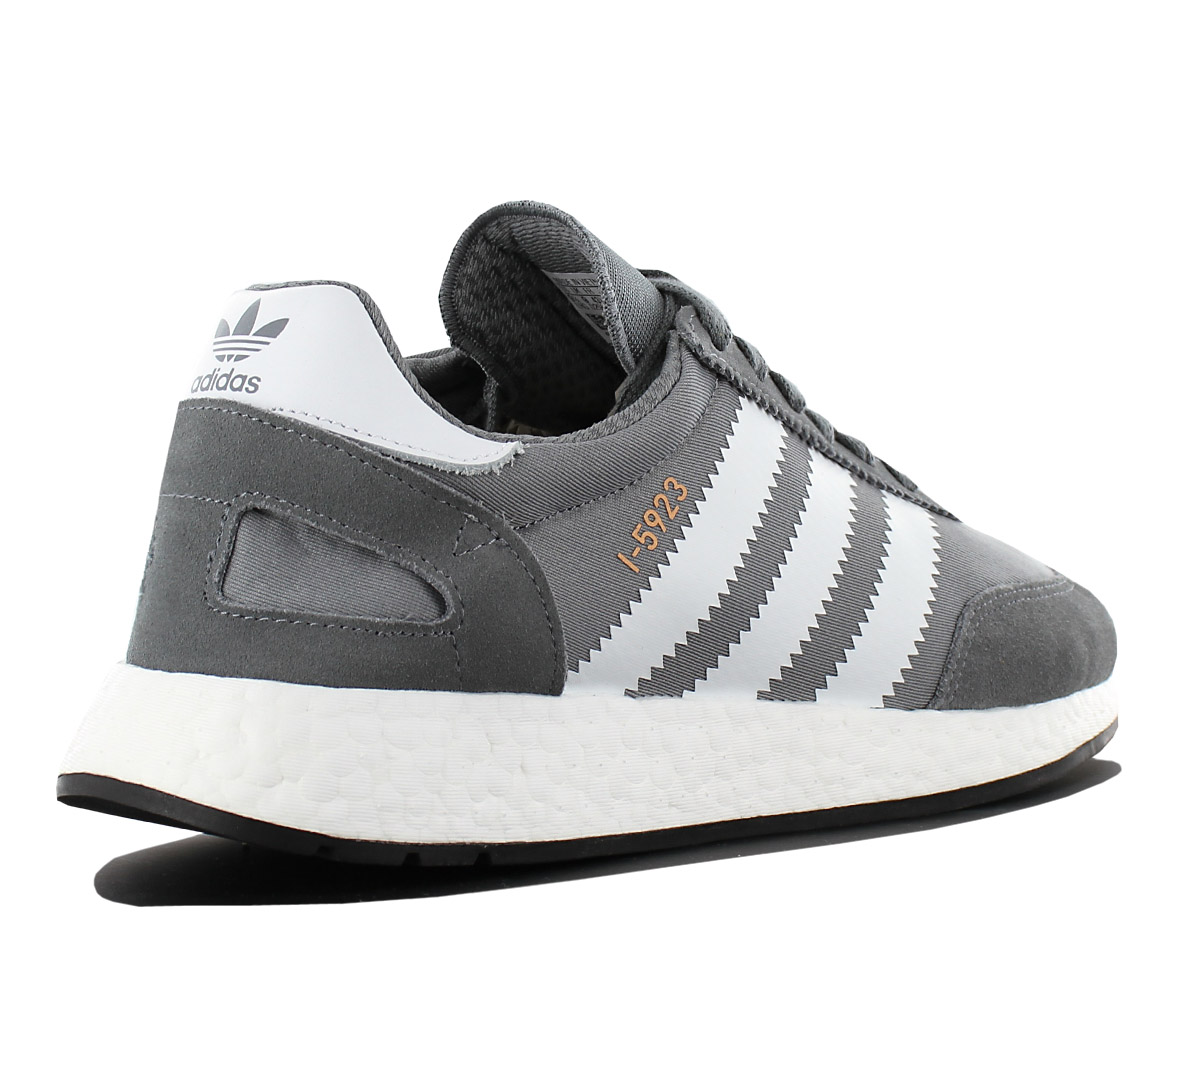 7b012fe08ab30d NEW adidas Iniki I-5923 BB2089 Men  s Shoes Trainers Sneakers SALE ...